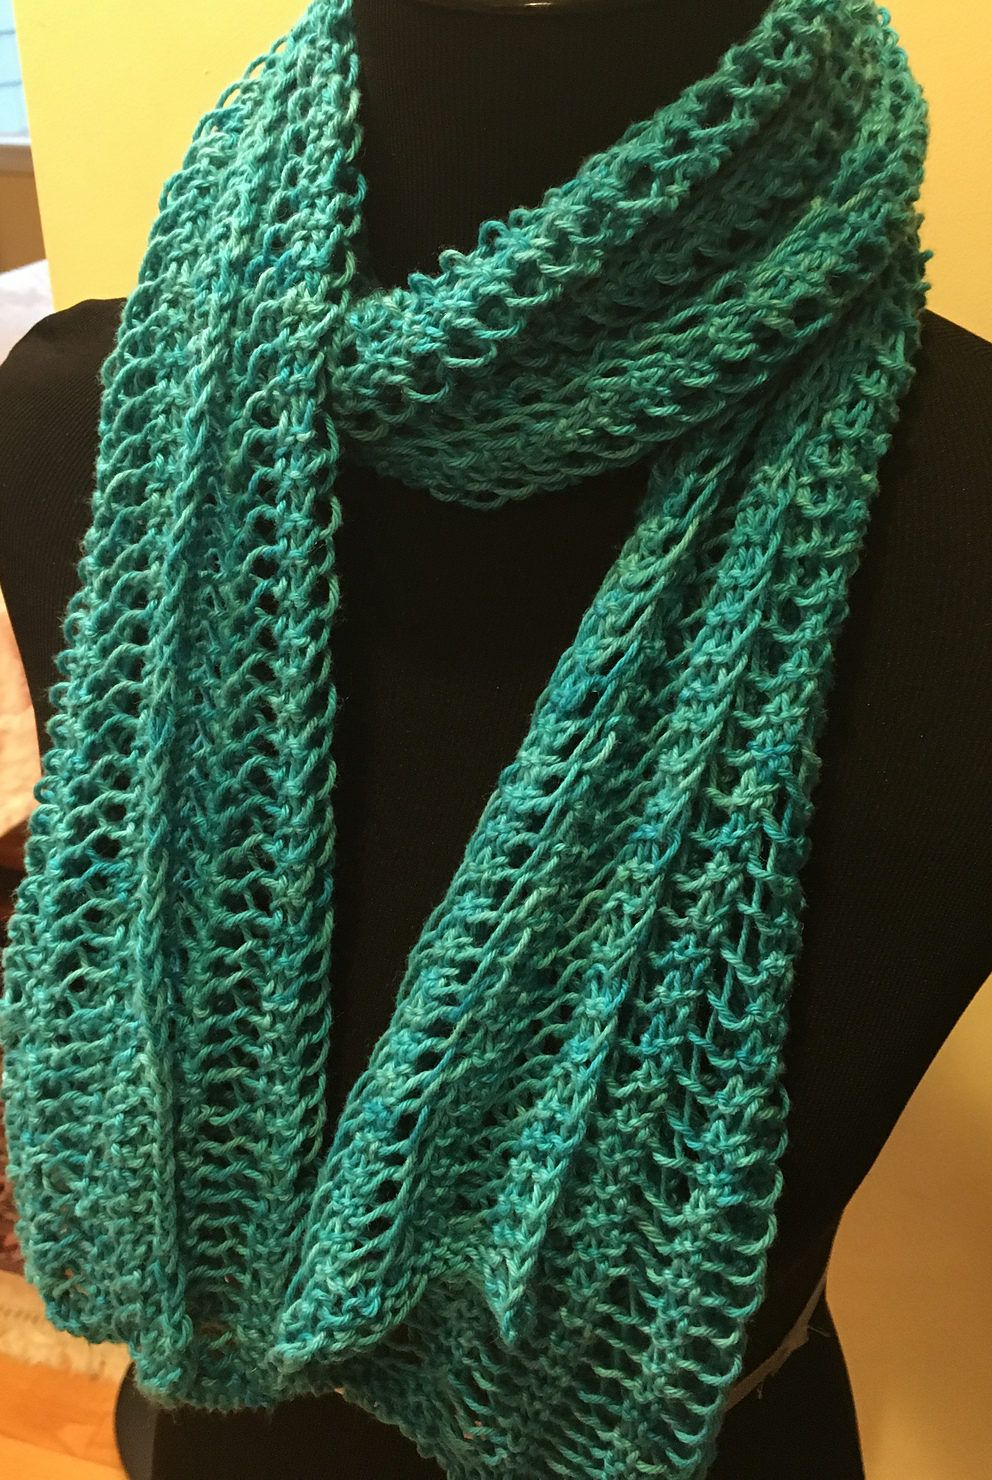 Free knitting pattern for one row repeat lace scarf knitting free knitting pattern for one row repeat lace scarf bankloansurffo Choice Image